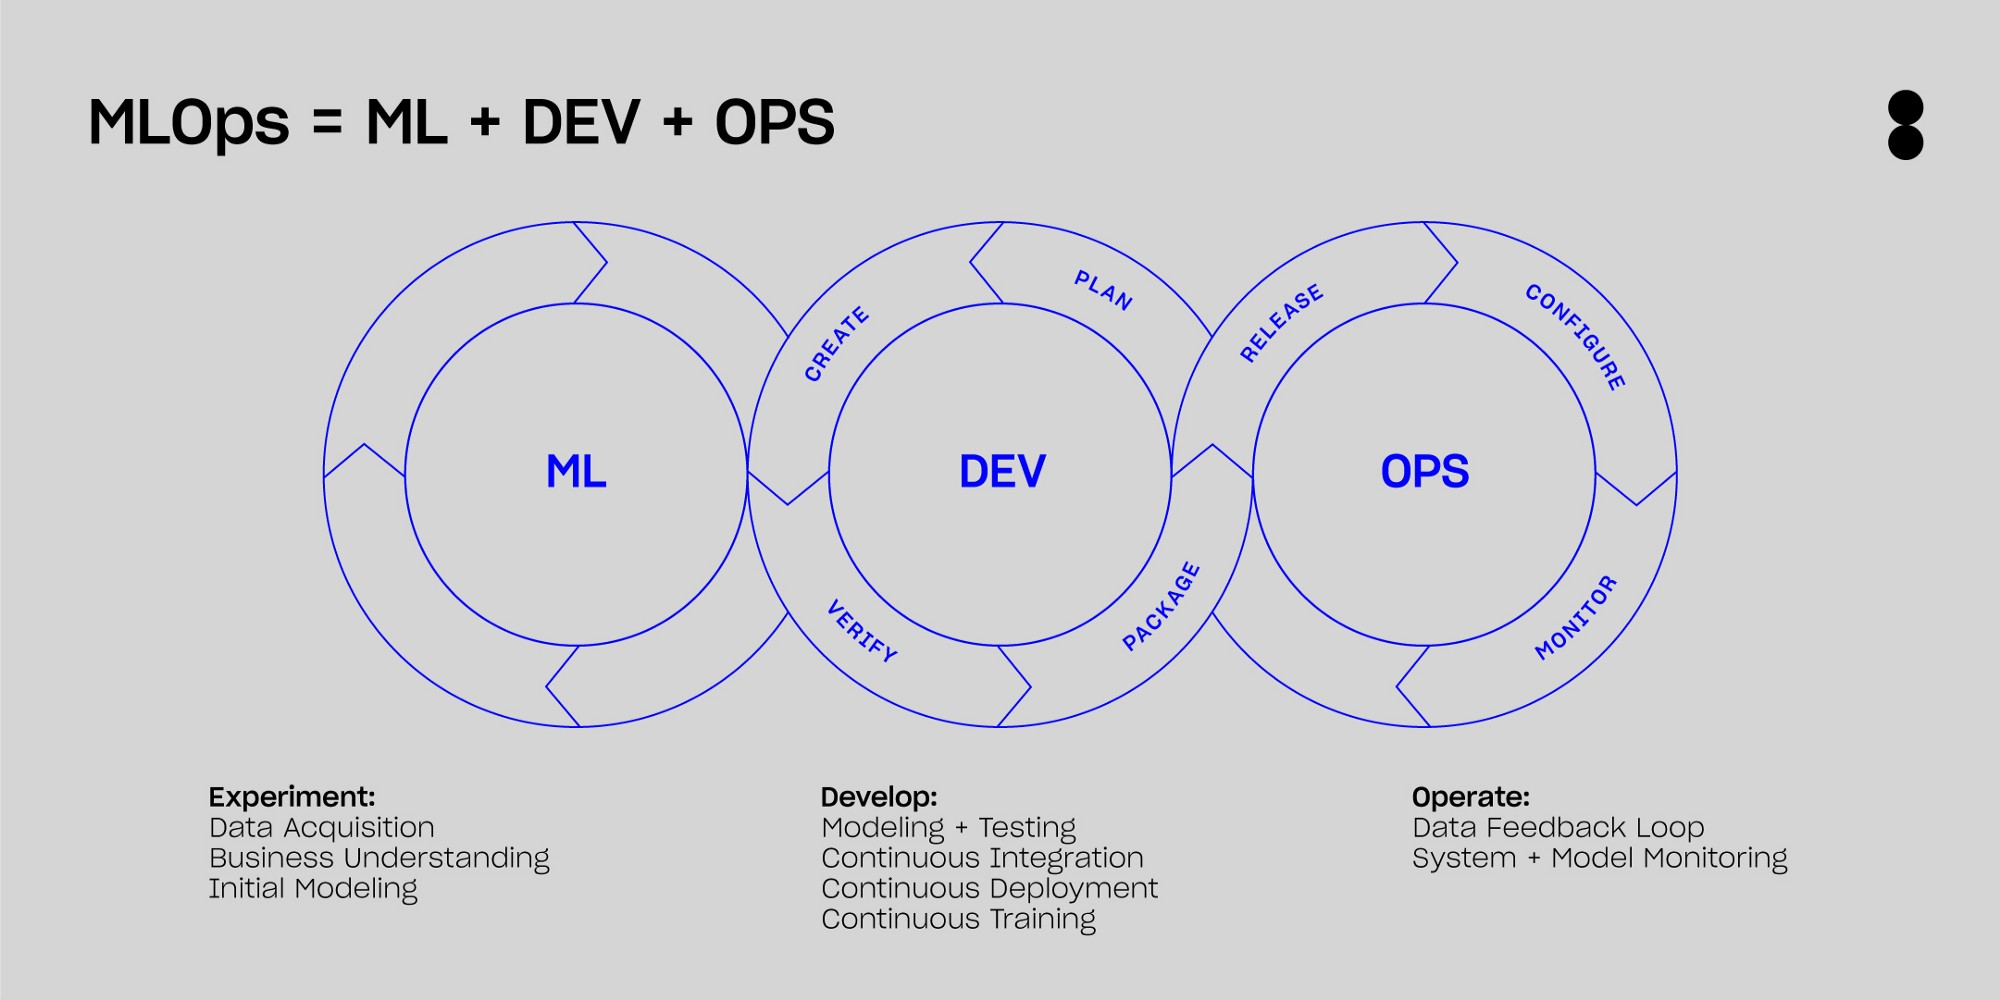 MLOps is about applying DevOps practices to Machine Learning